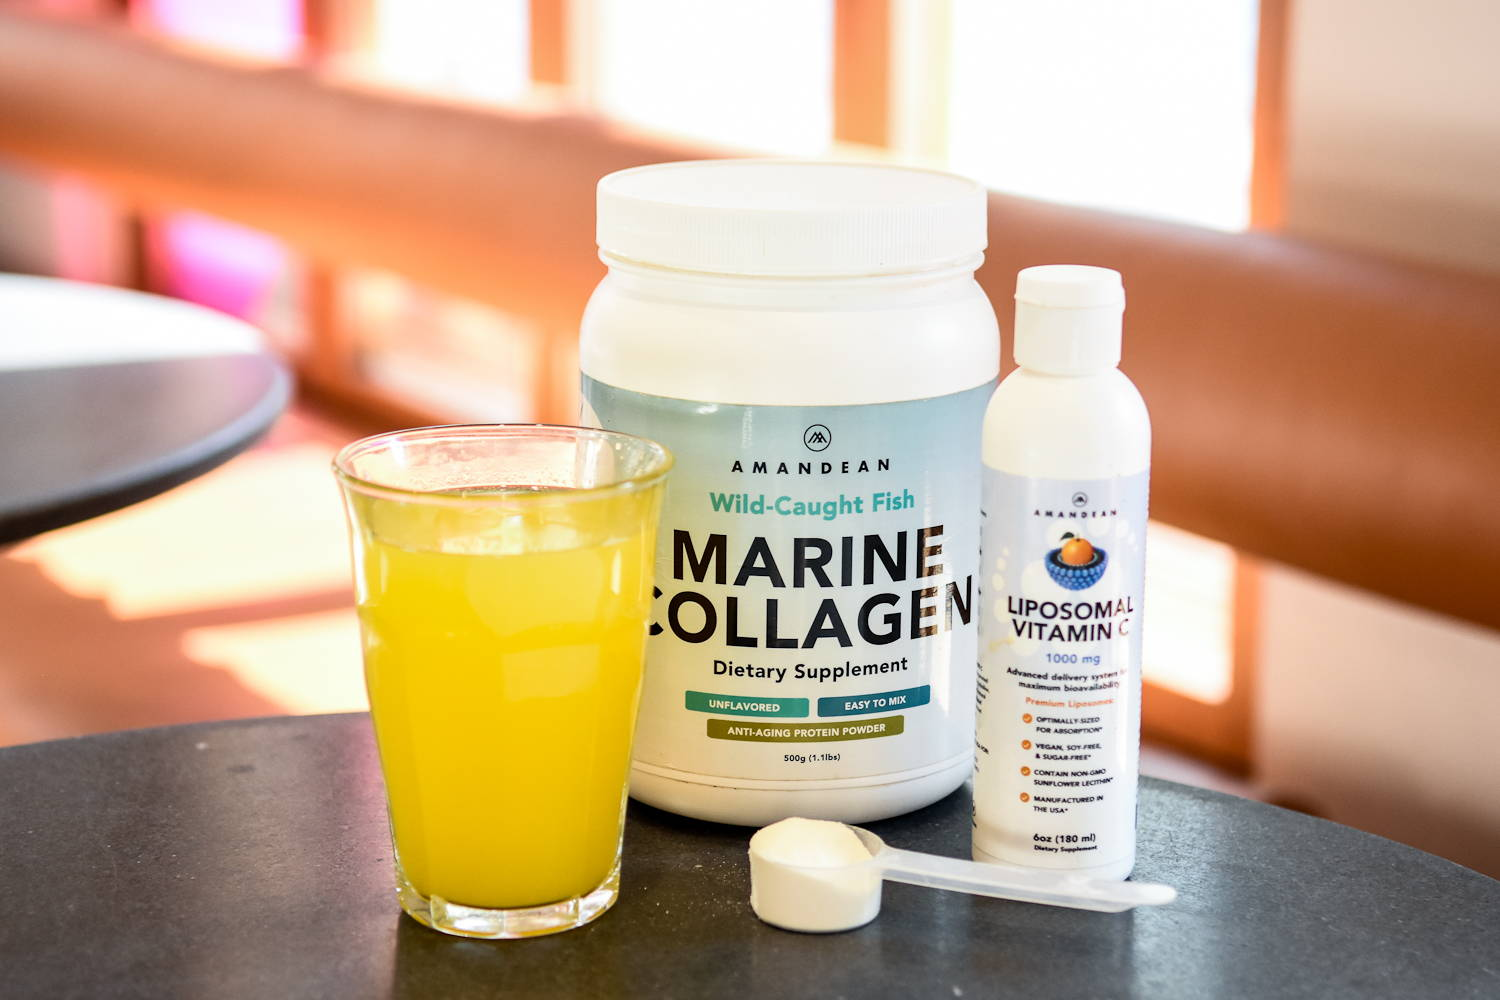 Liposomal Vitamin C Marine Collagen